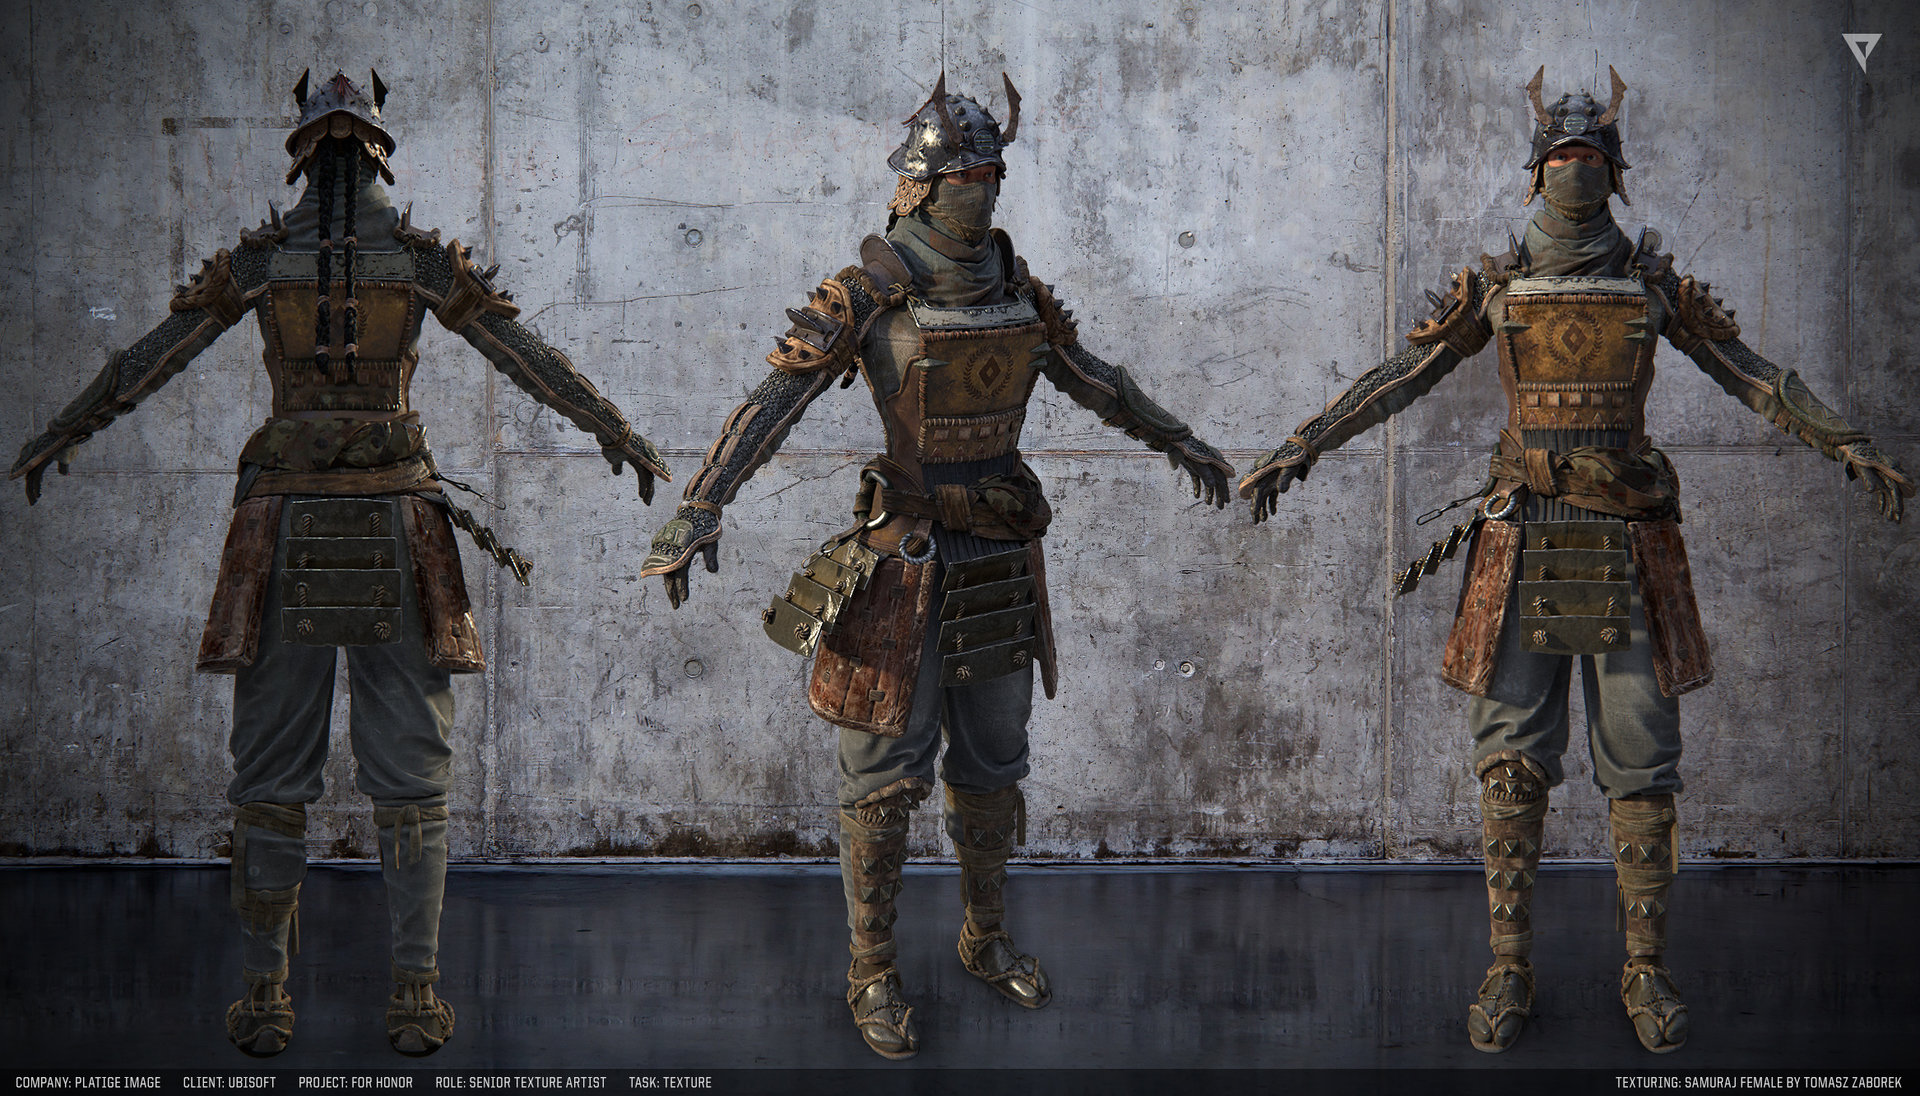 House Designer Online For Honor Trailer Concept Art By Platige 67 Escape